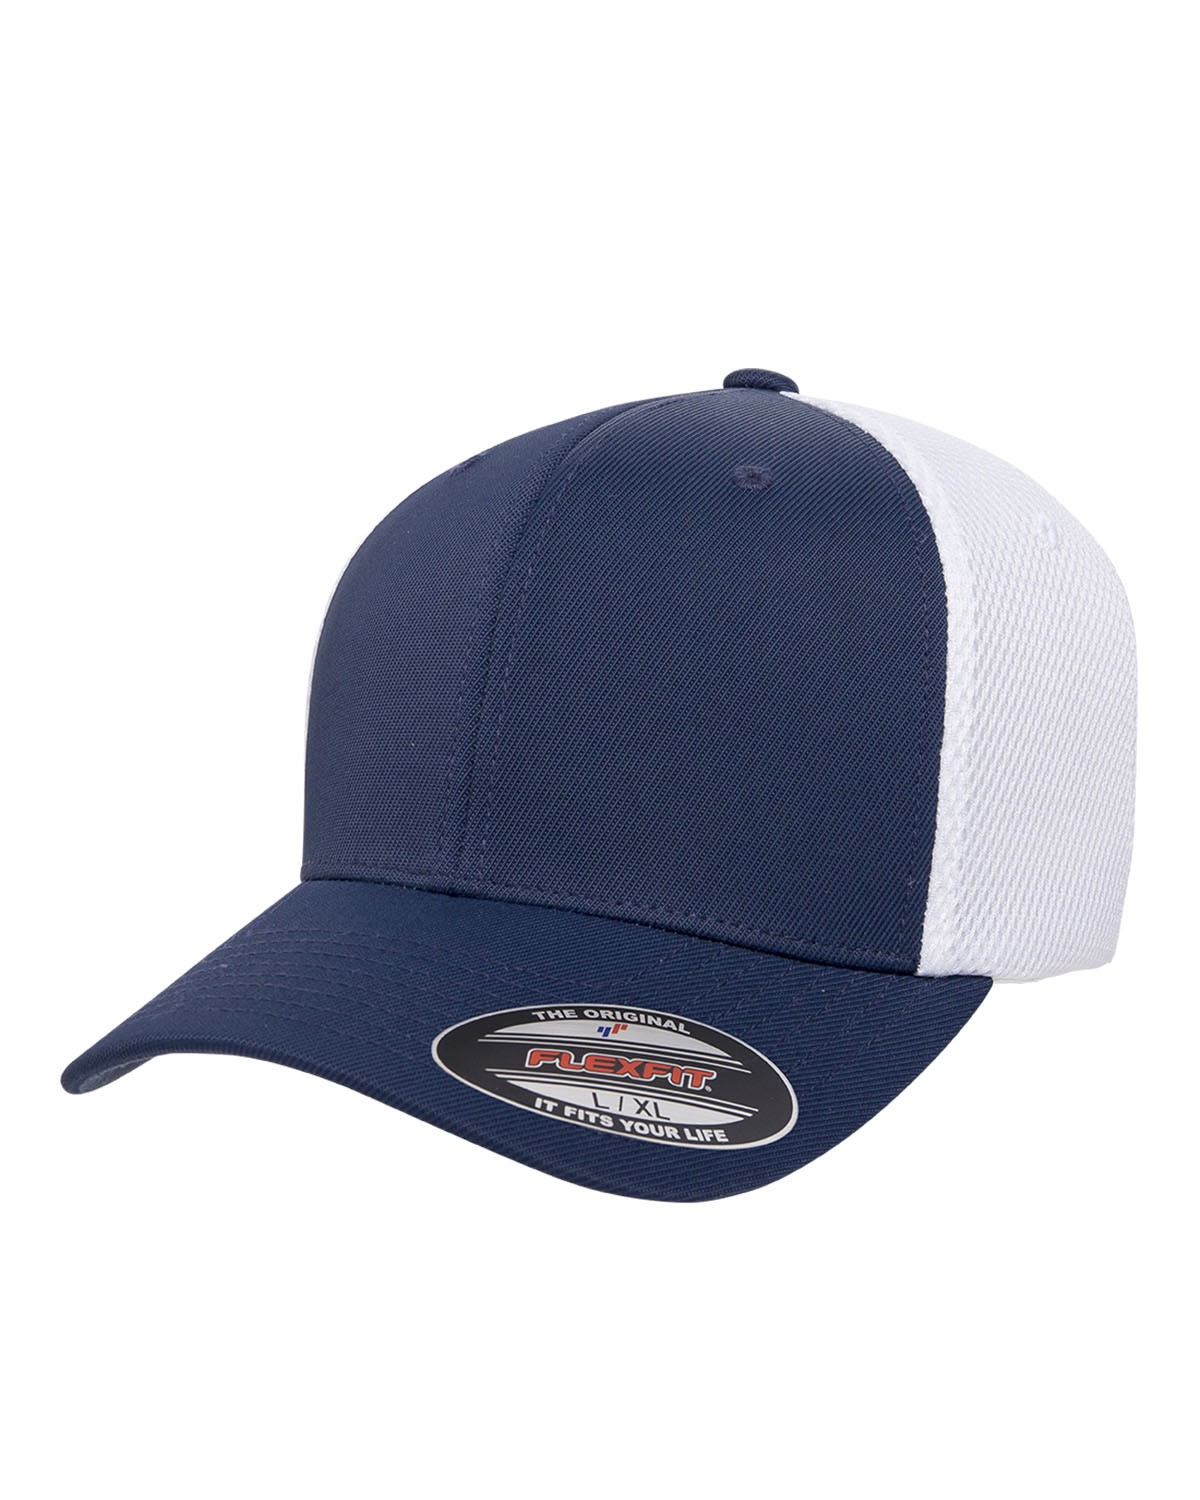 6533 Flexfit NAVY/WHITE